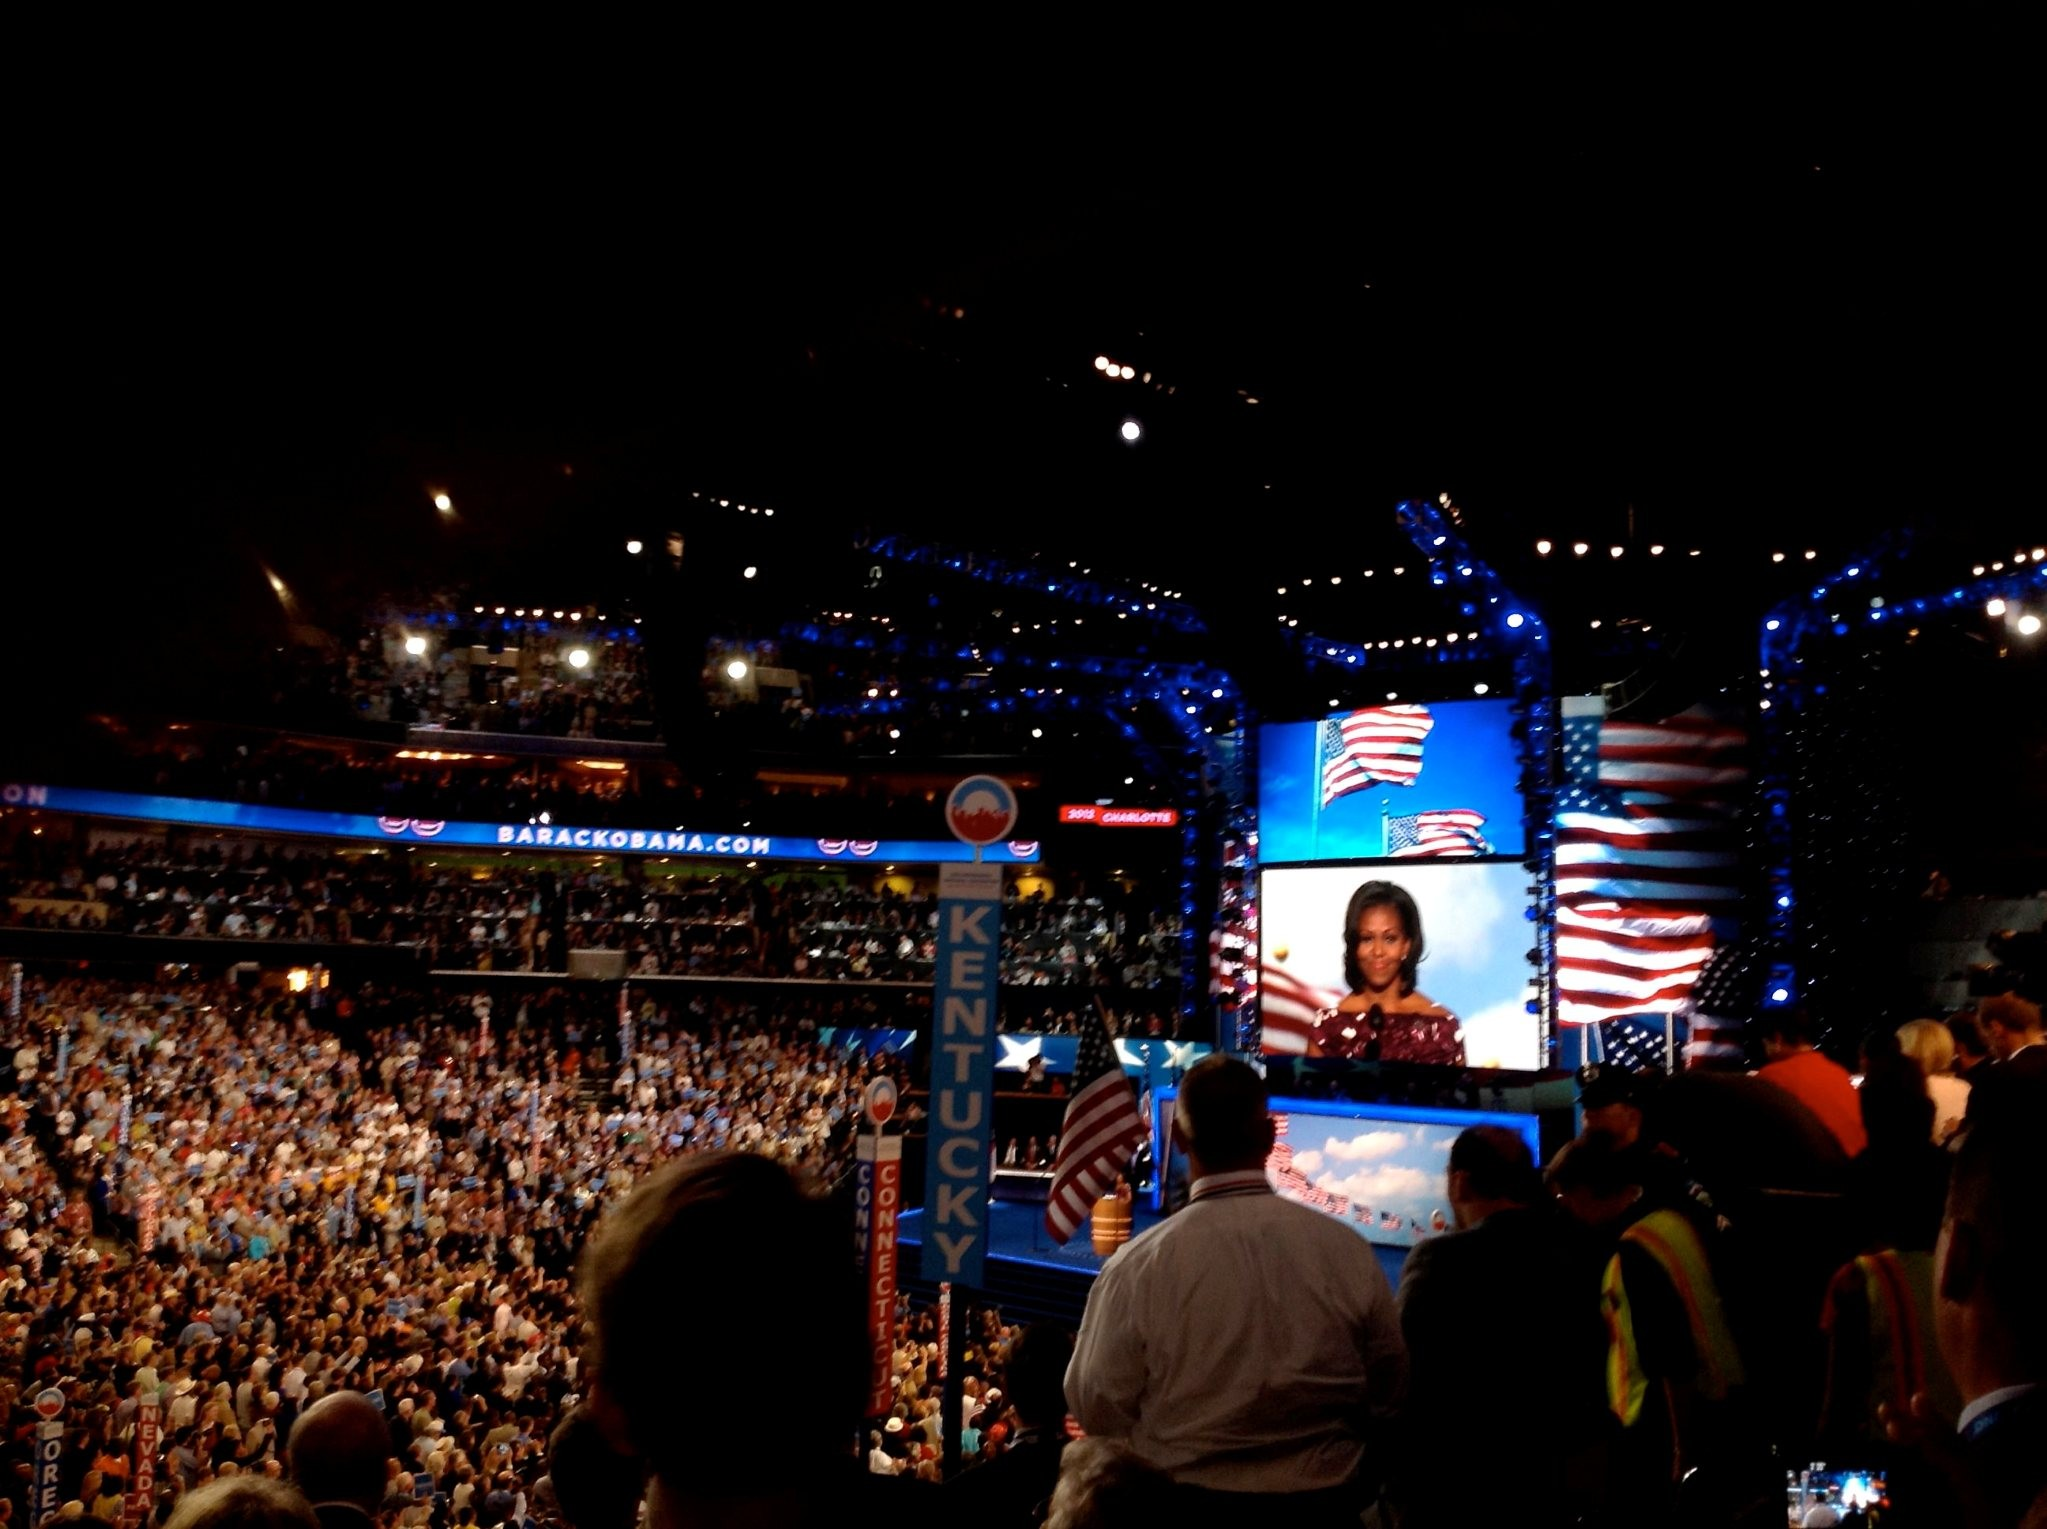 First Lady Michelle Obama speaks at the 2012 Democratic National Convention in Charlotte, North Carolina.